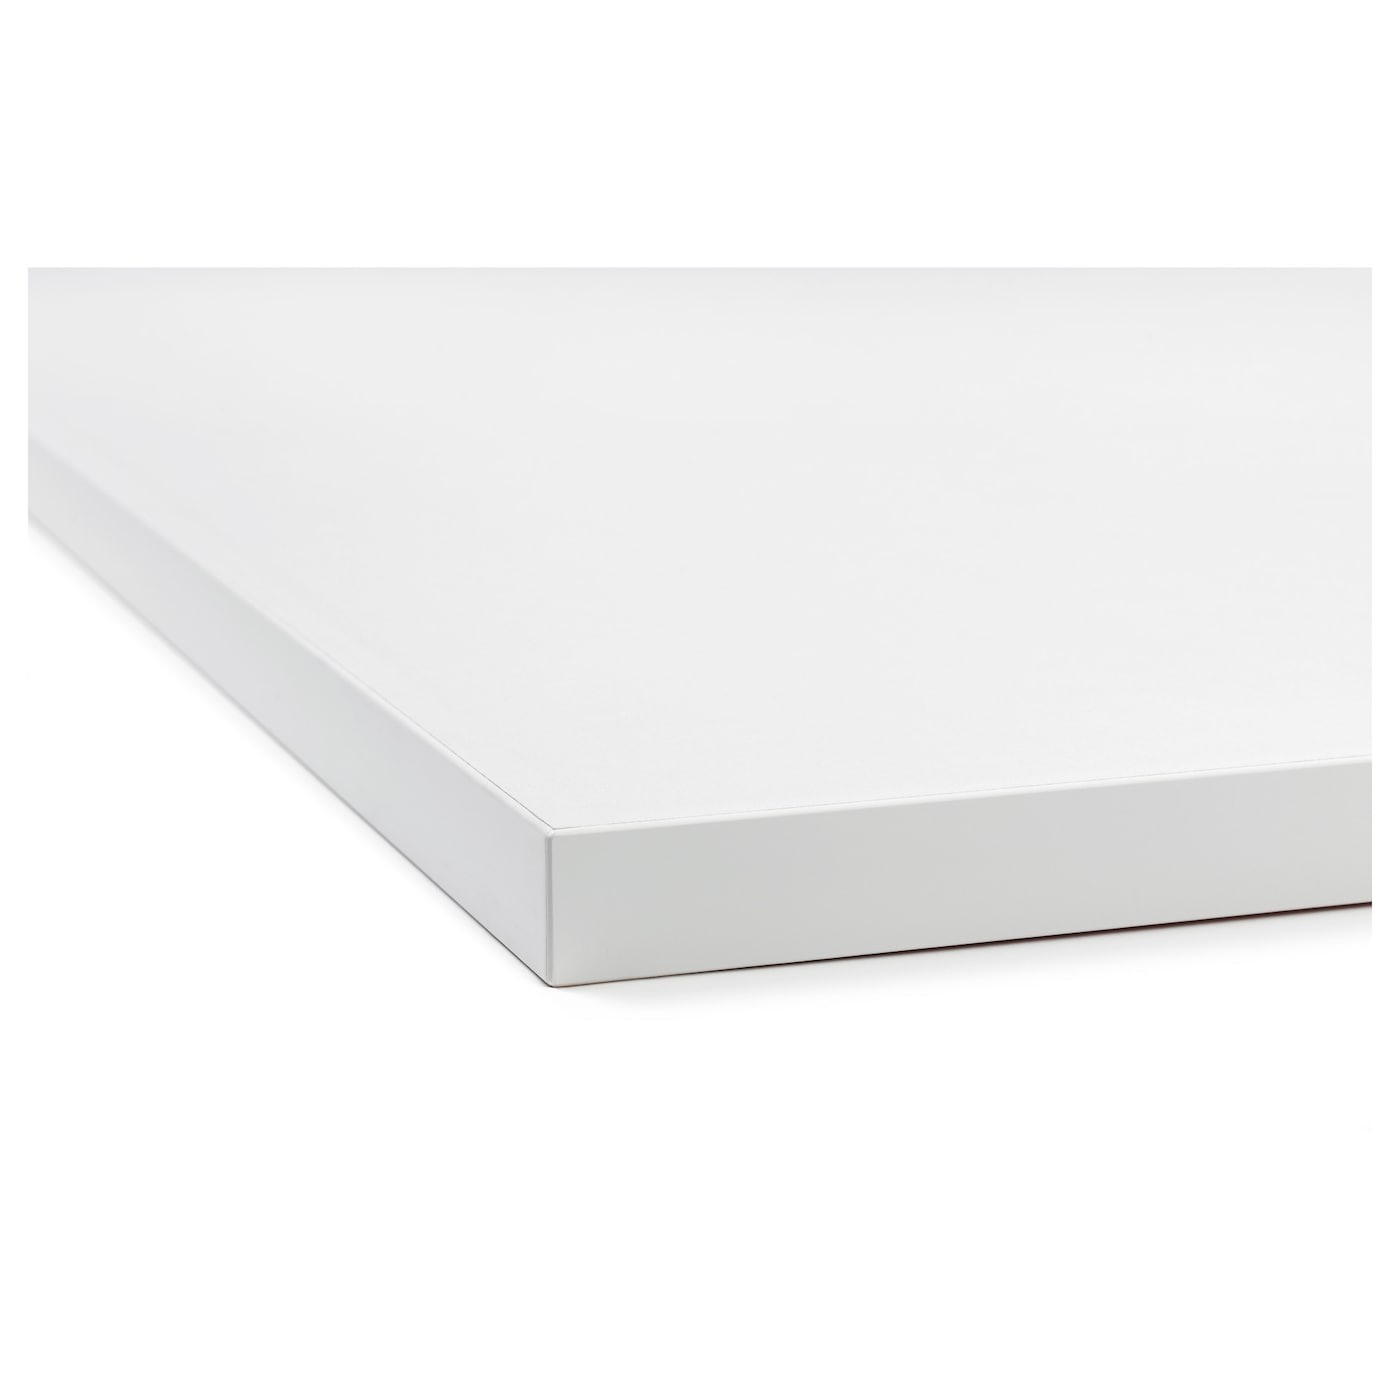 EKBACKEN Worktop, double-sided Light grey/white with white edge 186 ...